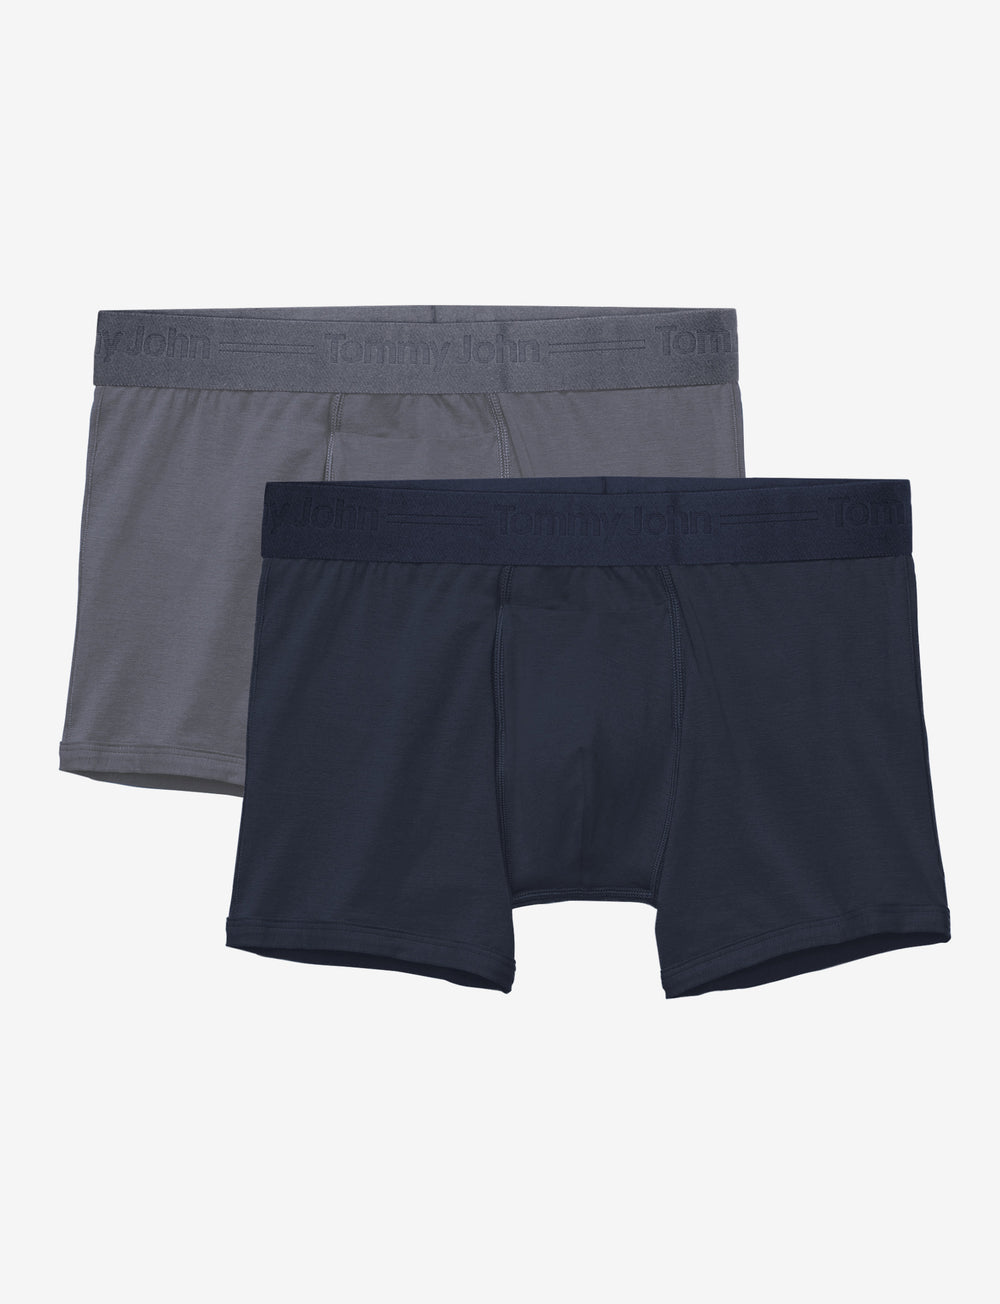 Cotton Basics Trunk 2 Pack Details Image